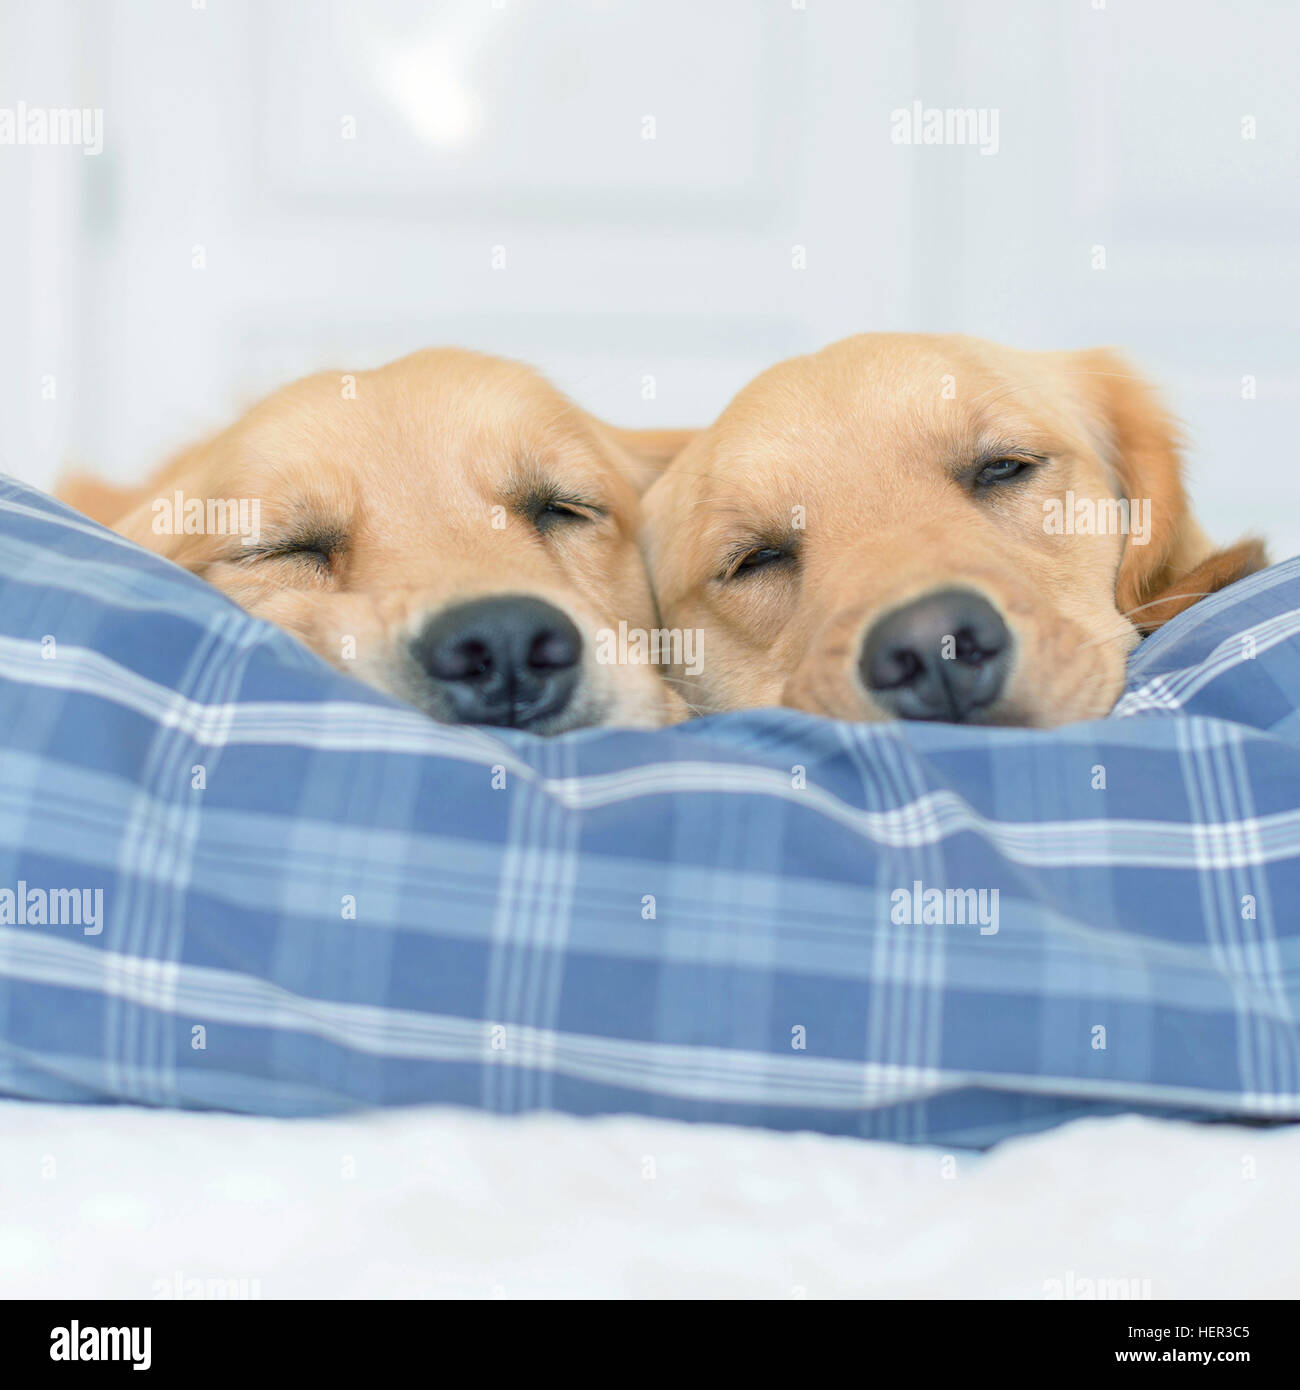 Two golden retriever dogs sleeping on a bed - Stock Image